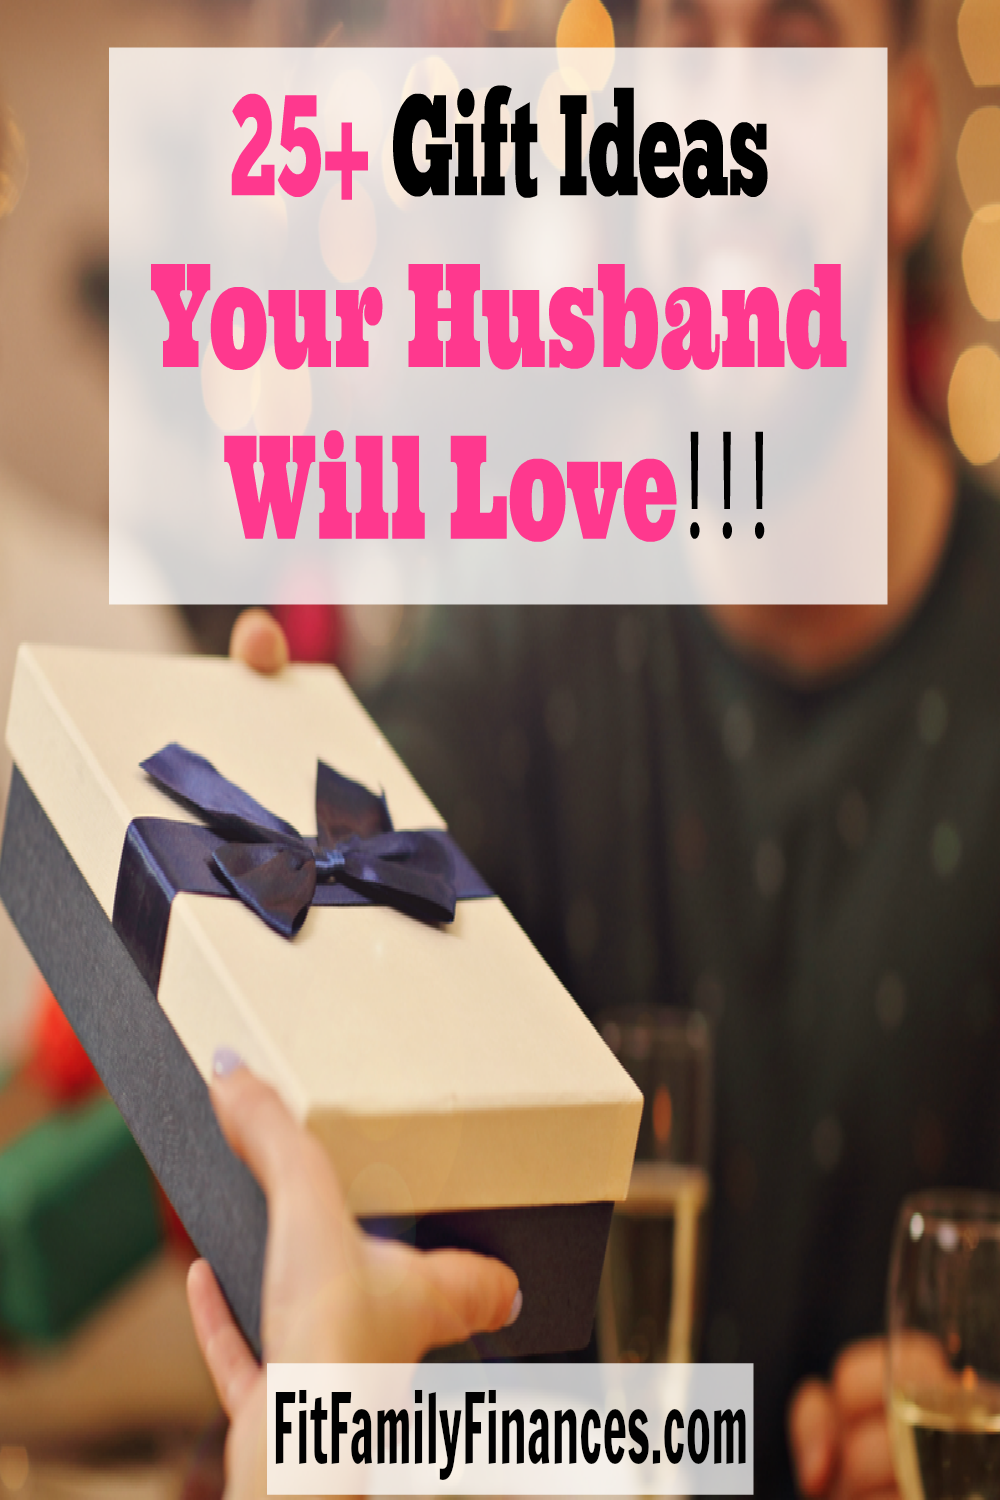 25 Awesome Gift Ideas Your Husband Will Love Fit Family Finances Birthday Present For Husband Birthday Gifts For Husband Present For Husband